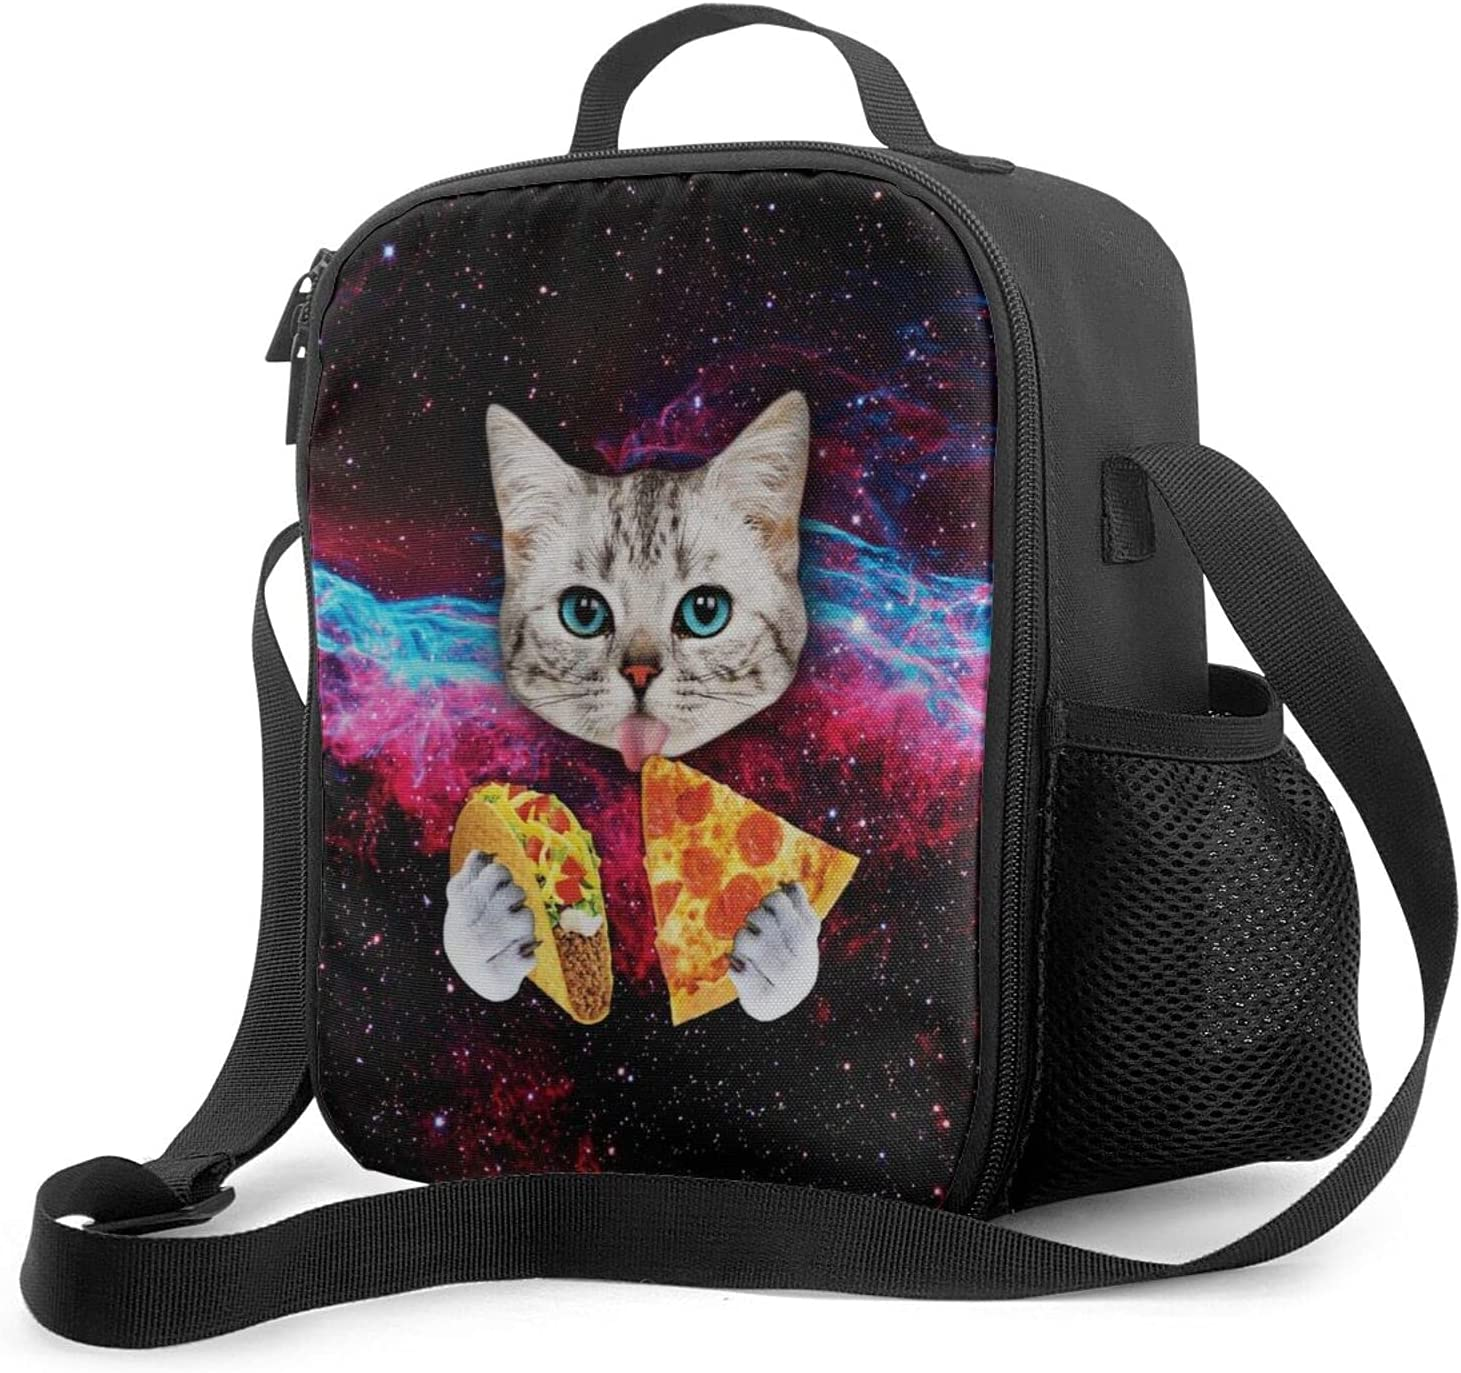 Taco 4 years warranty Cat Portable Lunch Bags Storage Nov Thermal Insulation Free shipping on posting reviews Cold